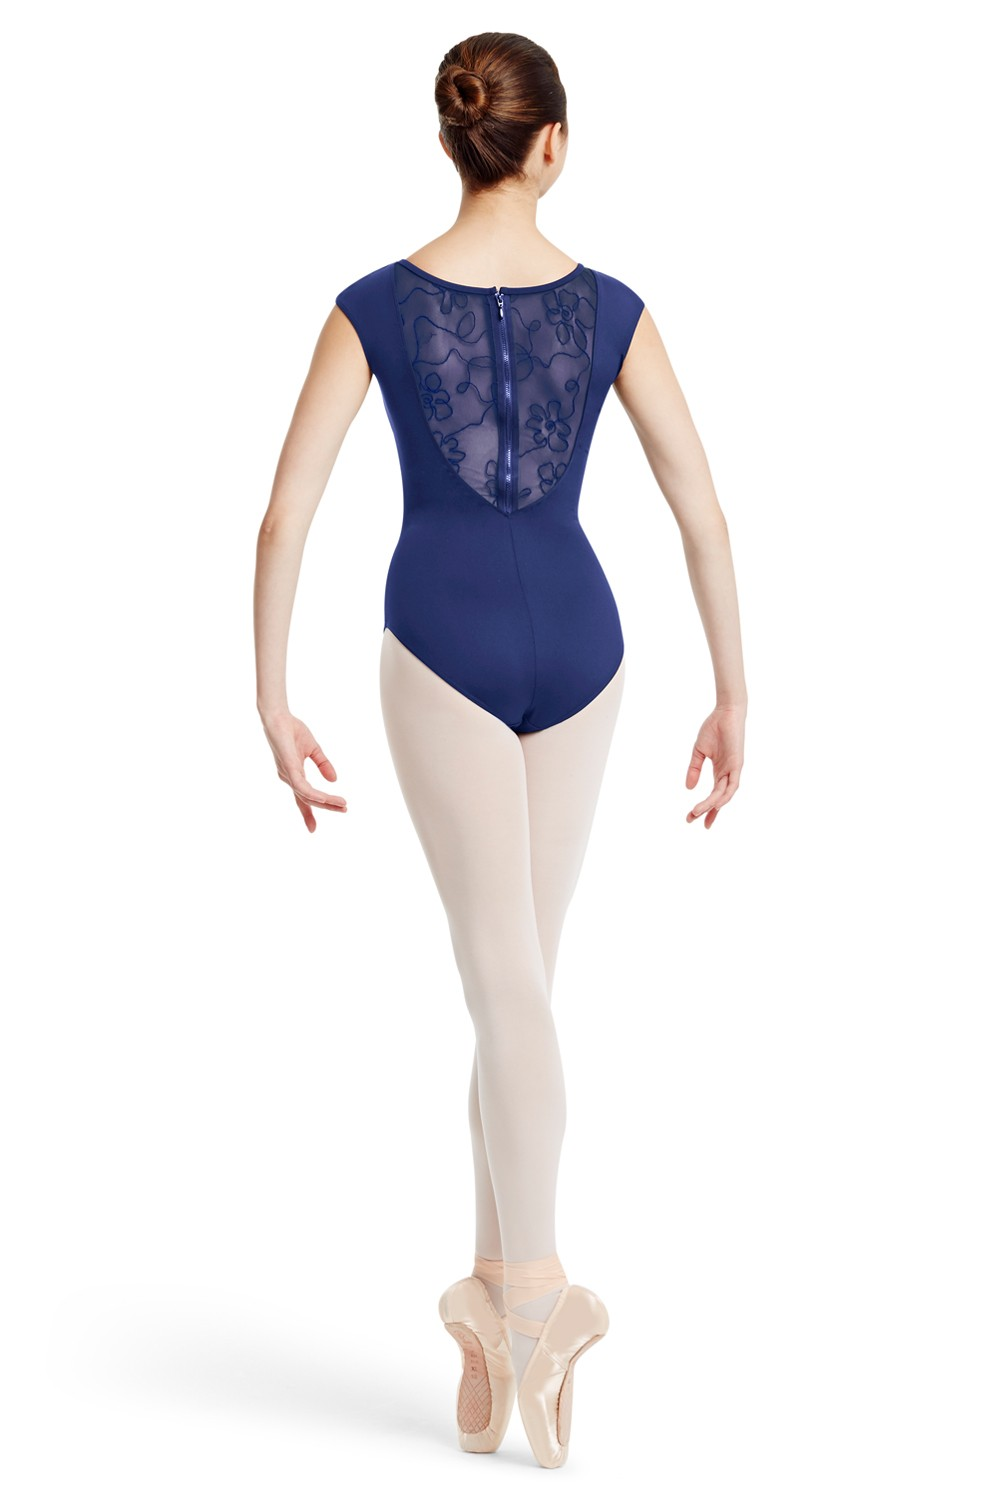 Tween Dance Leotards